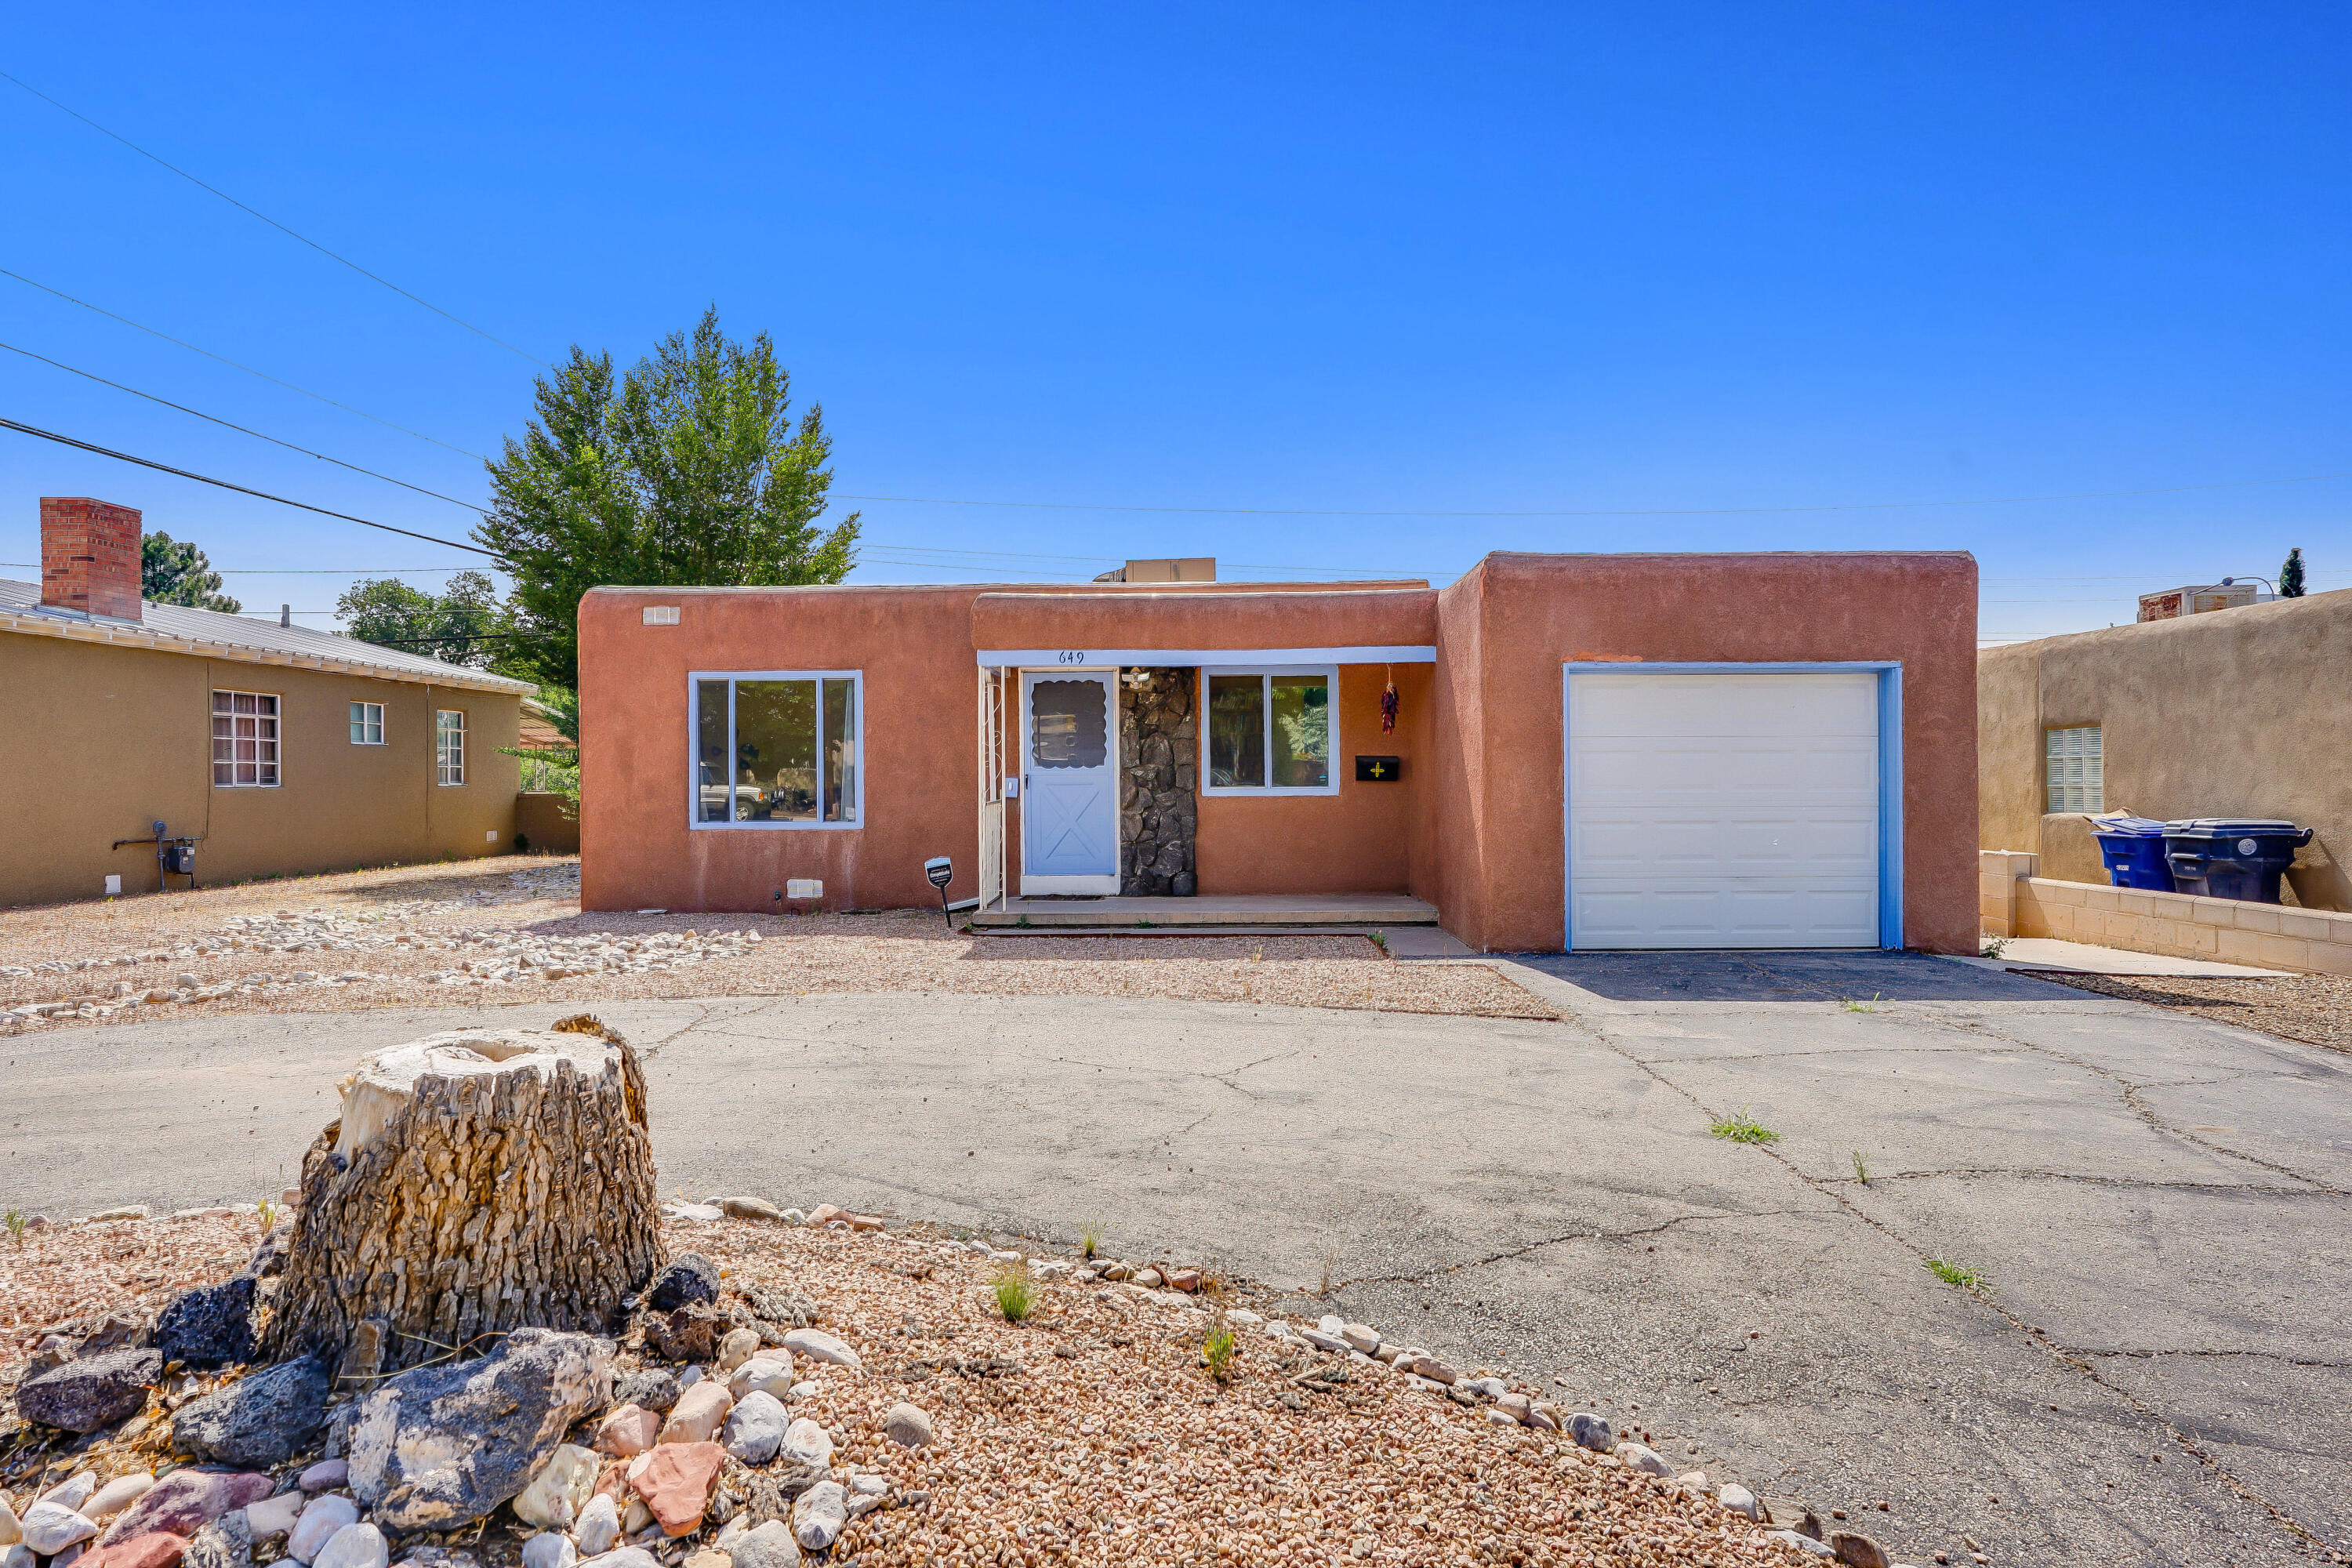 Charming details await you at 649 Monroe! Light and bright Living room with oversized windows and an office space or sitting area! Must see updated kitchen with concrete countertops and a Subway tile backsplash!  Newly remodeled bathroom with shower panel system and double sinks. Newer roof and evaporative cooler only three years old. Spacious backyard with green grass, covered Patio space, Pergola with swings, and a fire pit! The backyard also has a Vegetable garden and fruit trees, including plum, apple, and peach trees. Close to UNM and Nob Hill! Quick access to I40 and I25. Take a virtual walkthrough tour today, or schedule a private showing! Hurry, this one won't last long!